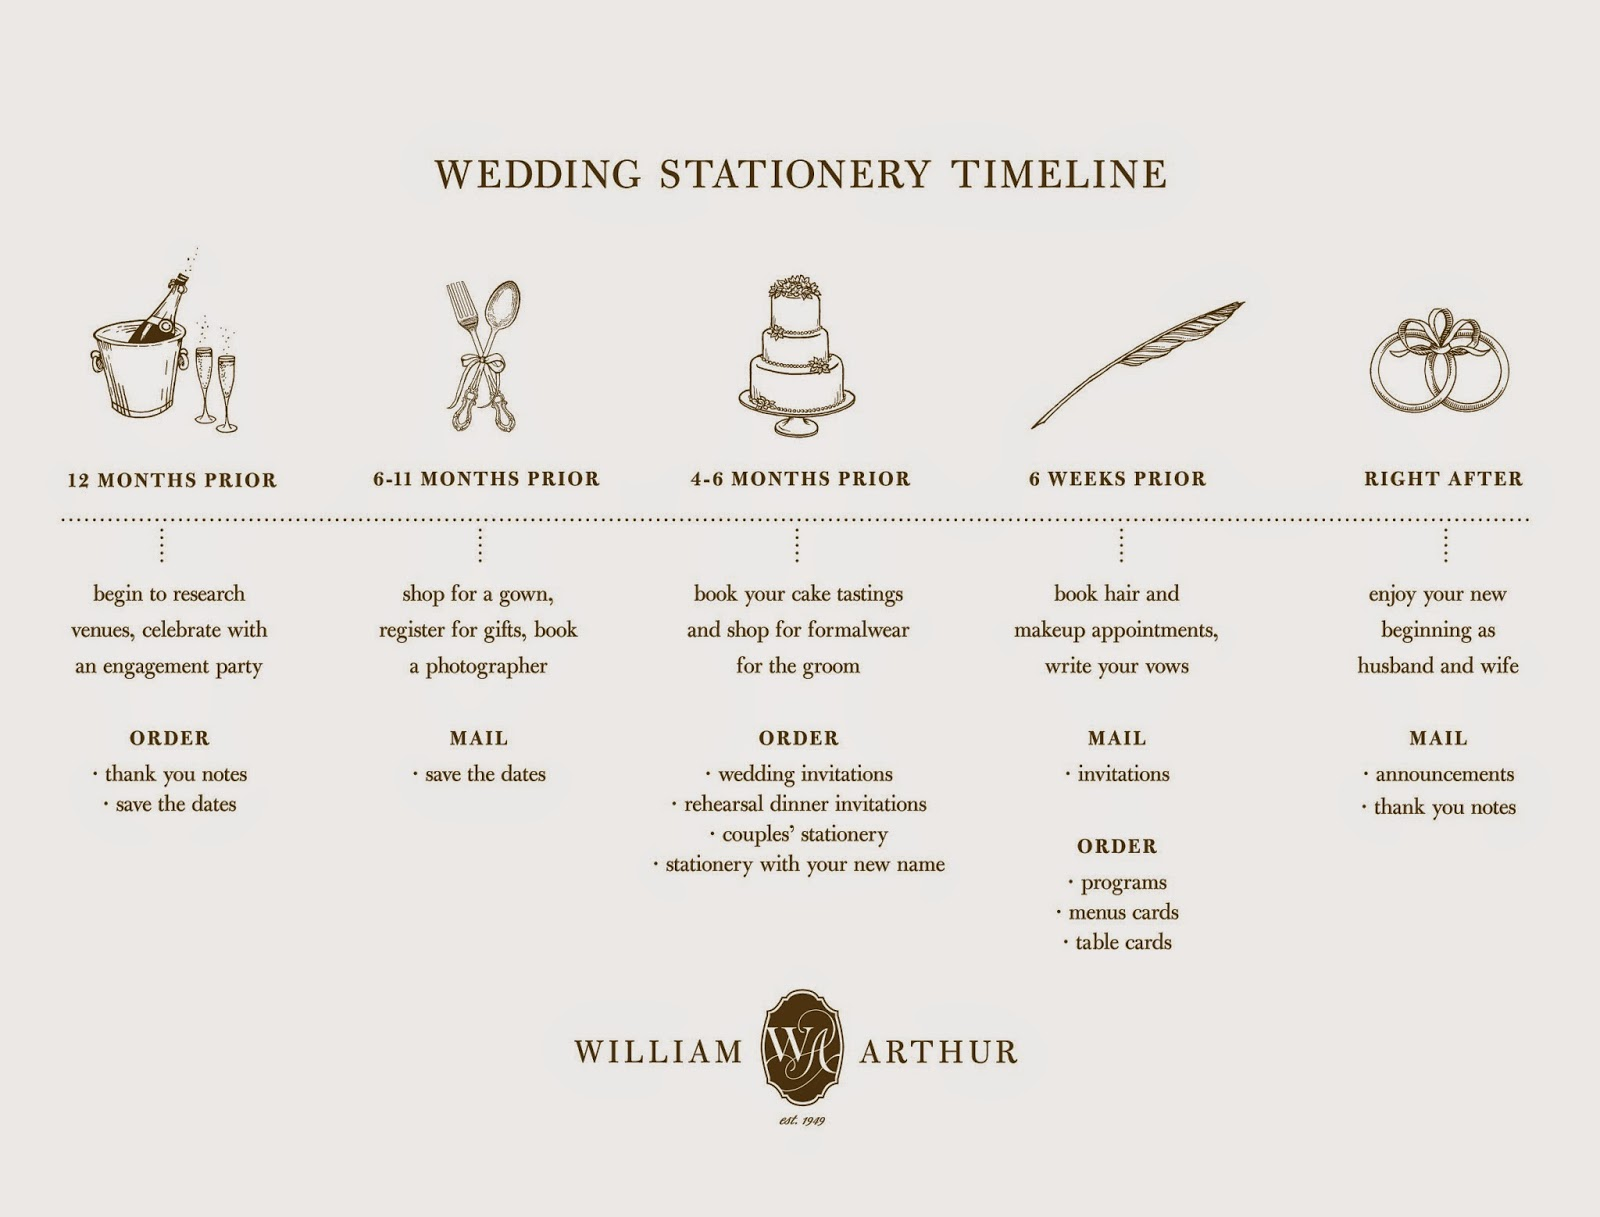 When Do You Order Wedding Invitations: William Arthur Blog: When To Mail You Save The Dates